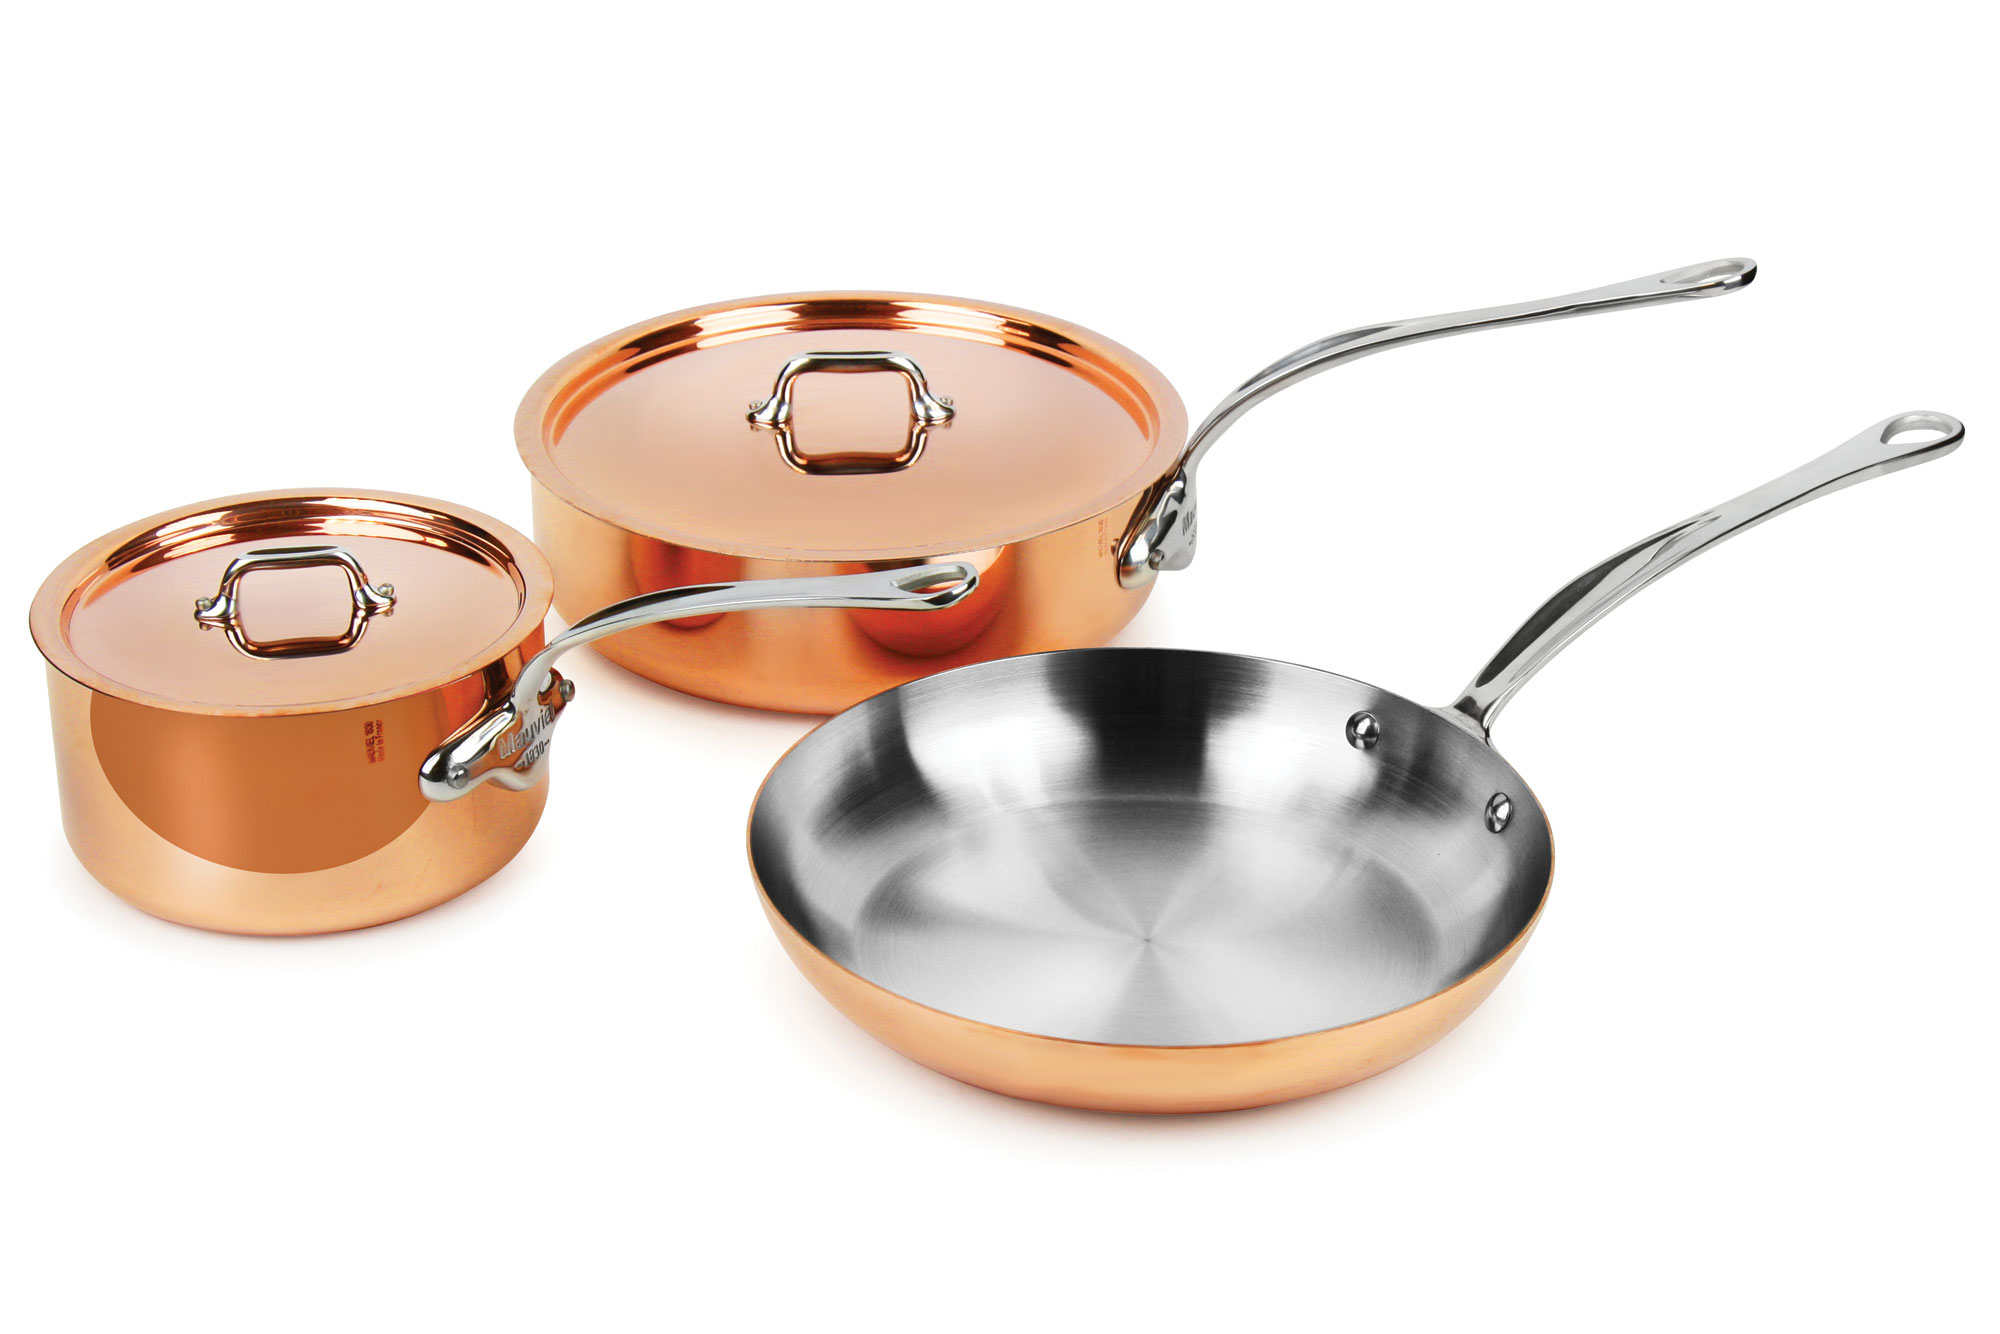 viking stainless steel cookware bakeware holida